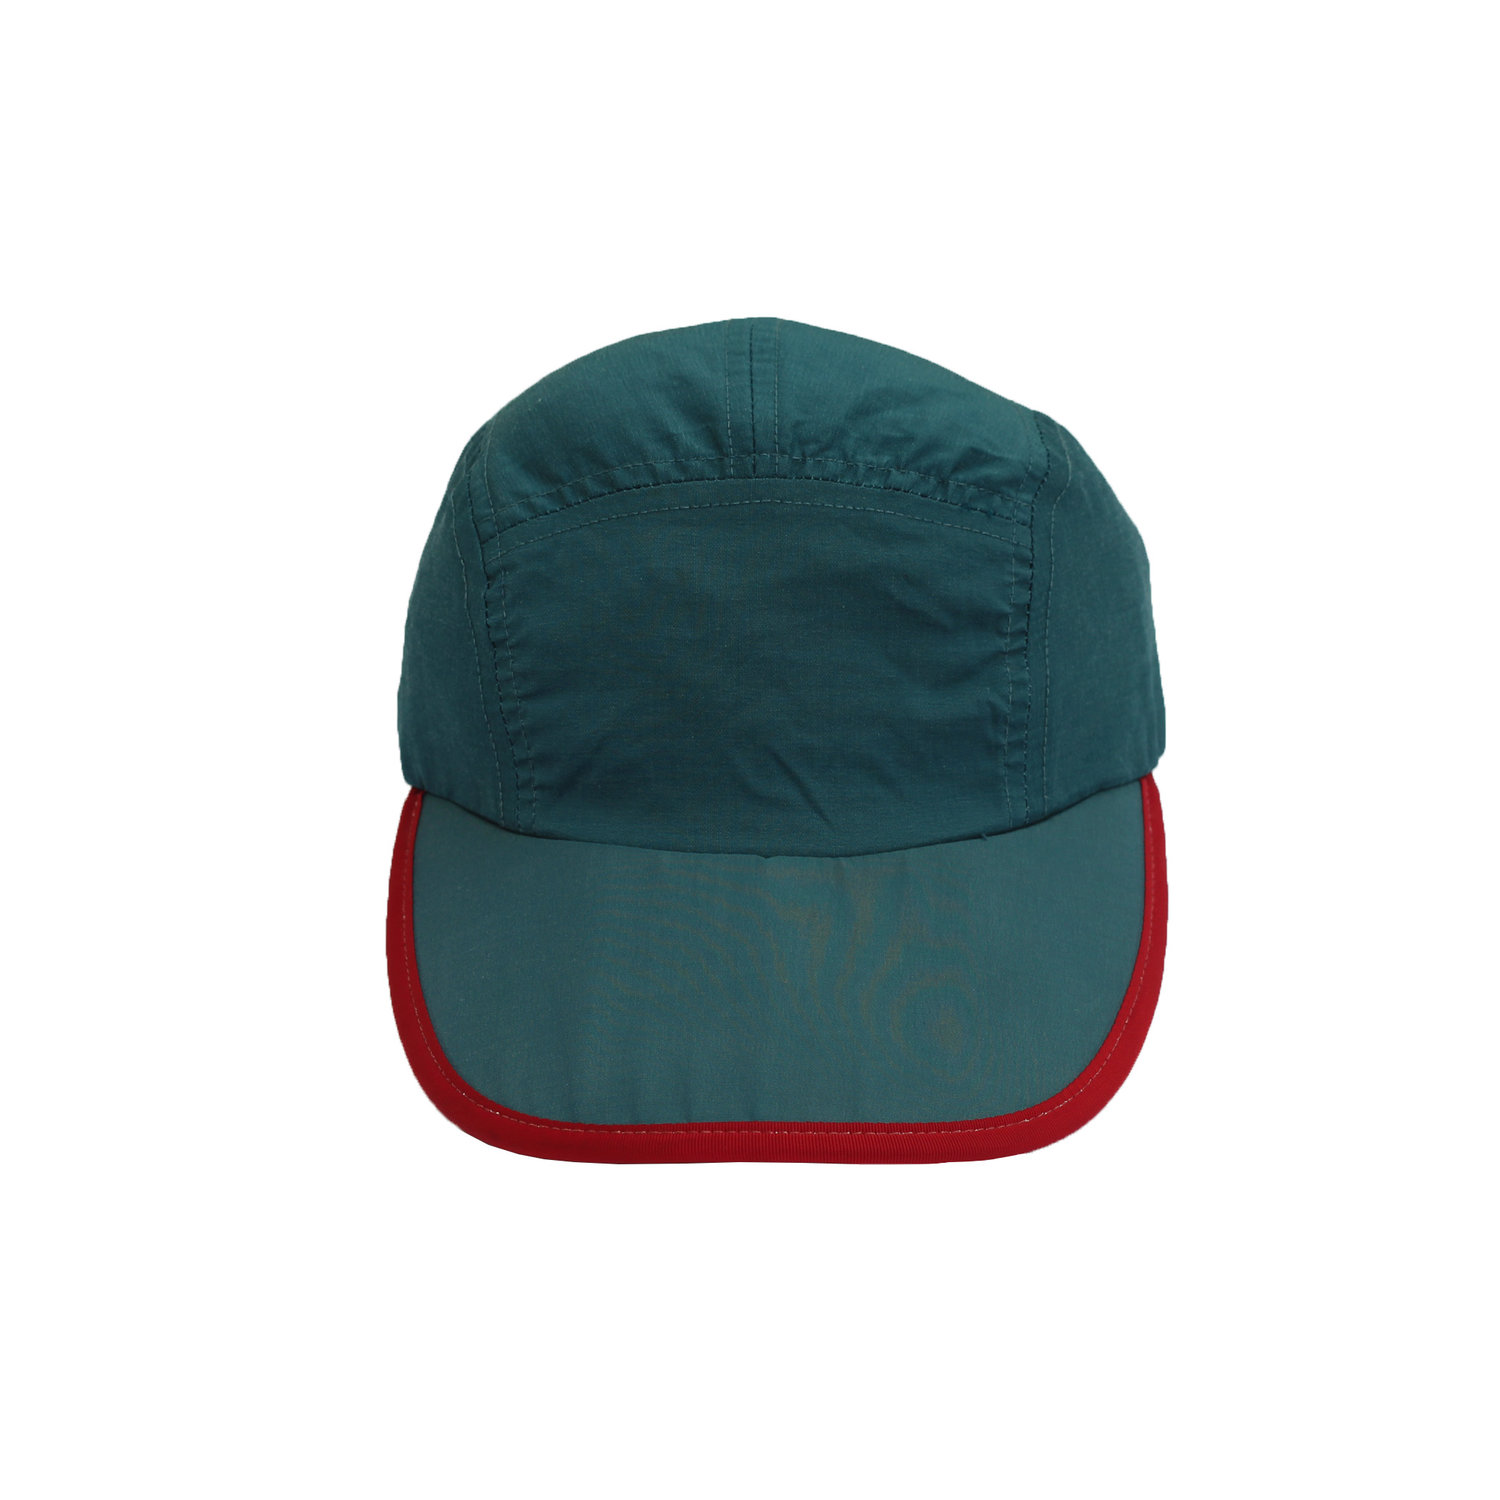 2638bb30c9150 Vintage Patagonia Green   Red 5 Panel Long Bill Hat (Size M) — Roots